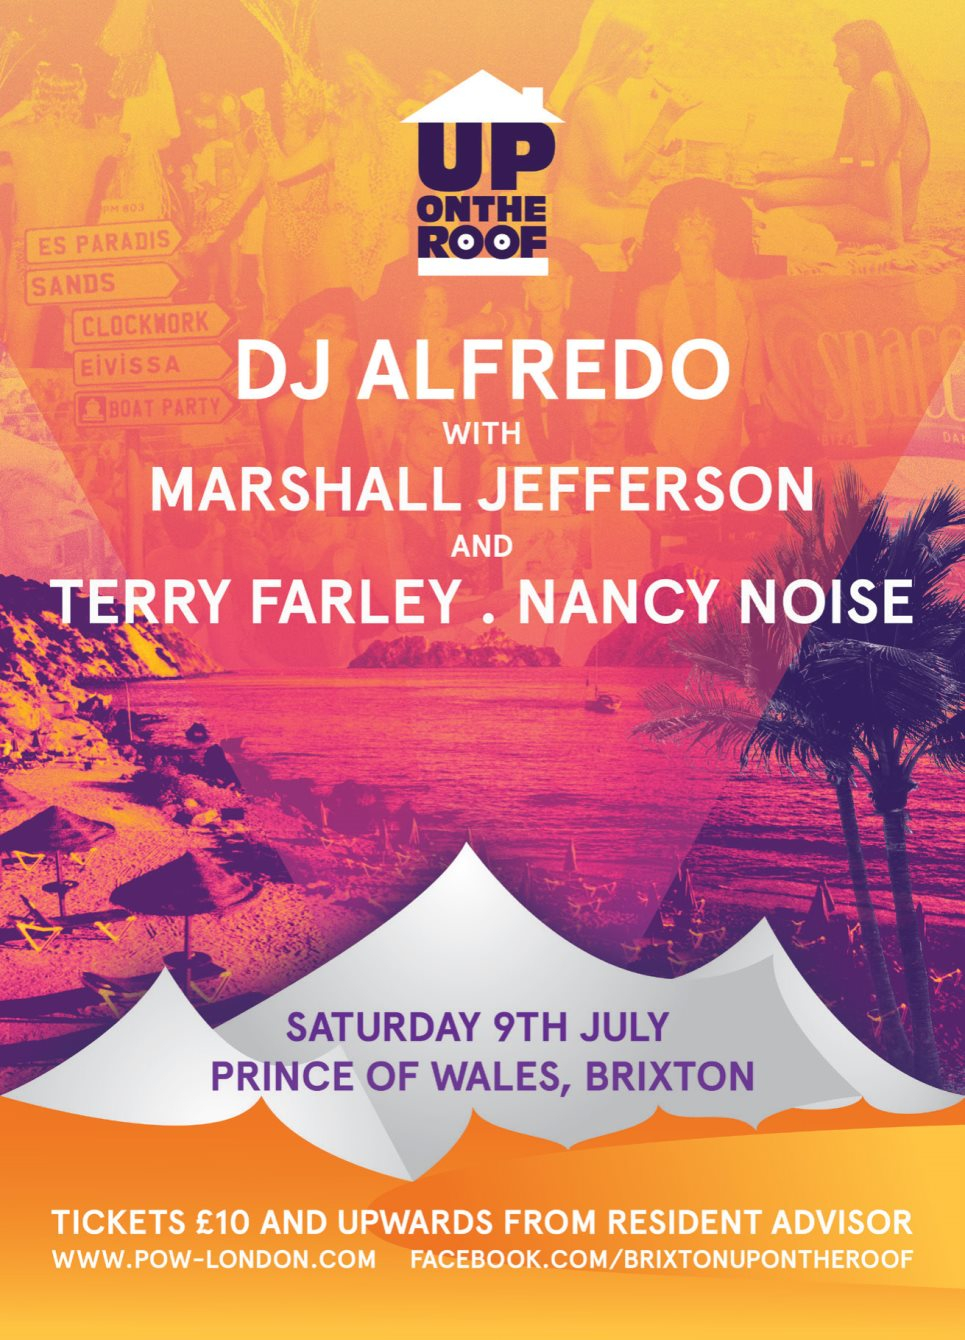 DJ Alfredo...Up On The Roof with Marshall Jefferson and Terry Farley - Flyer front